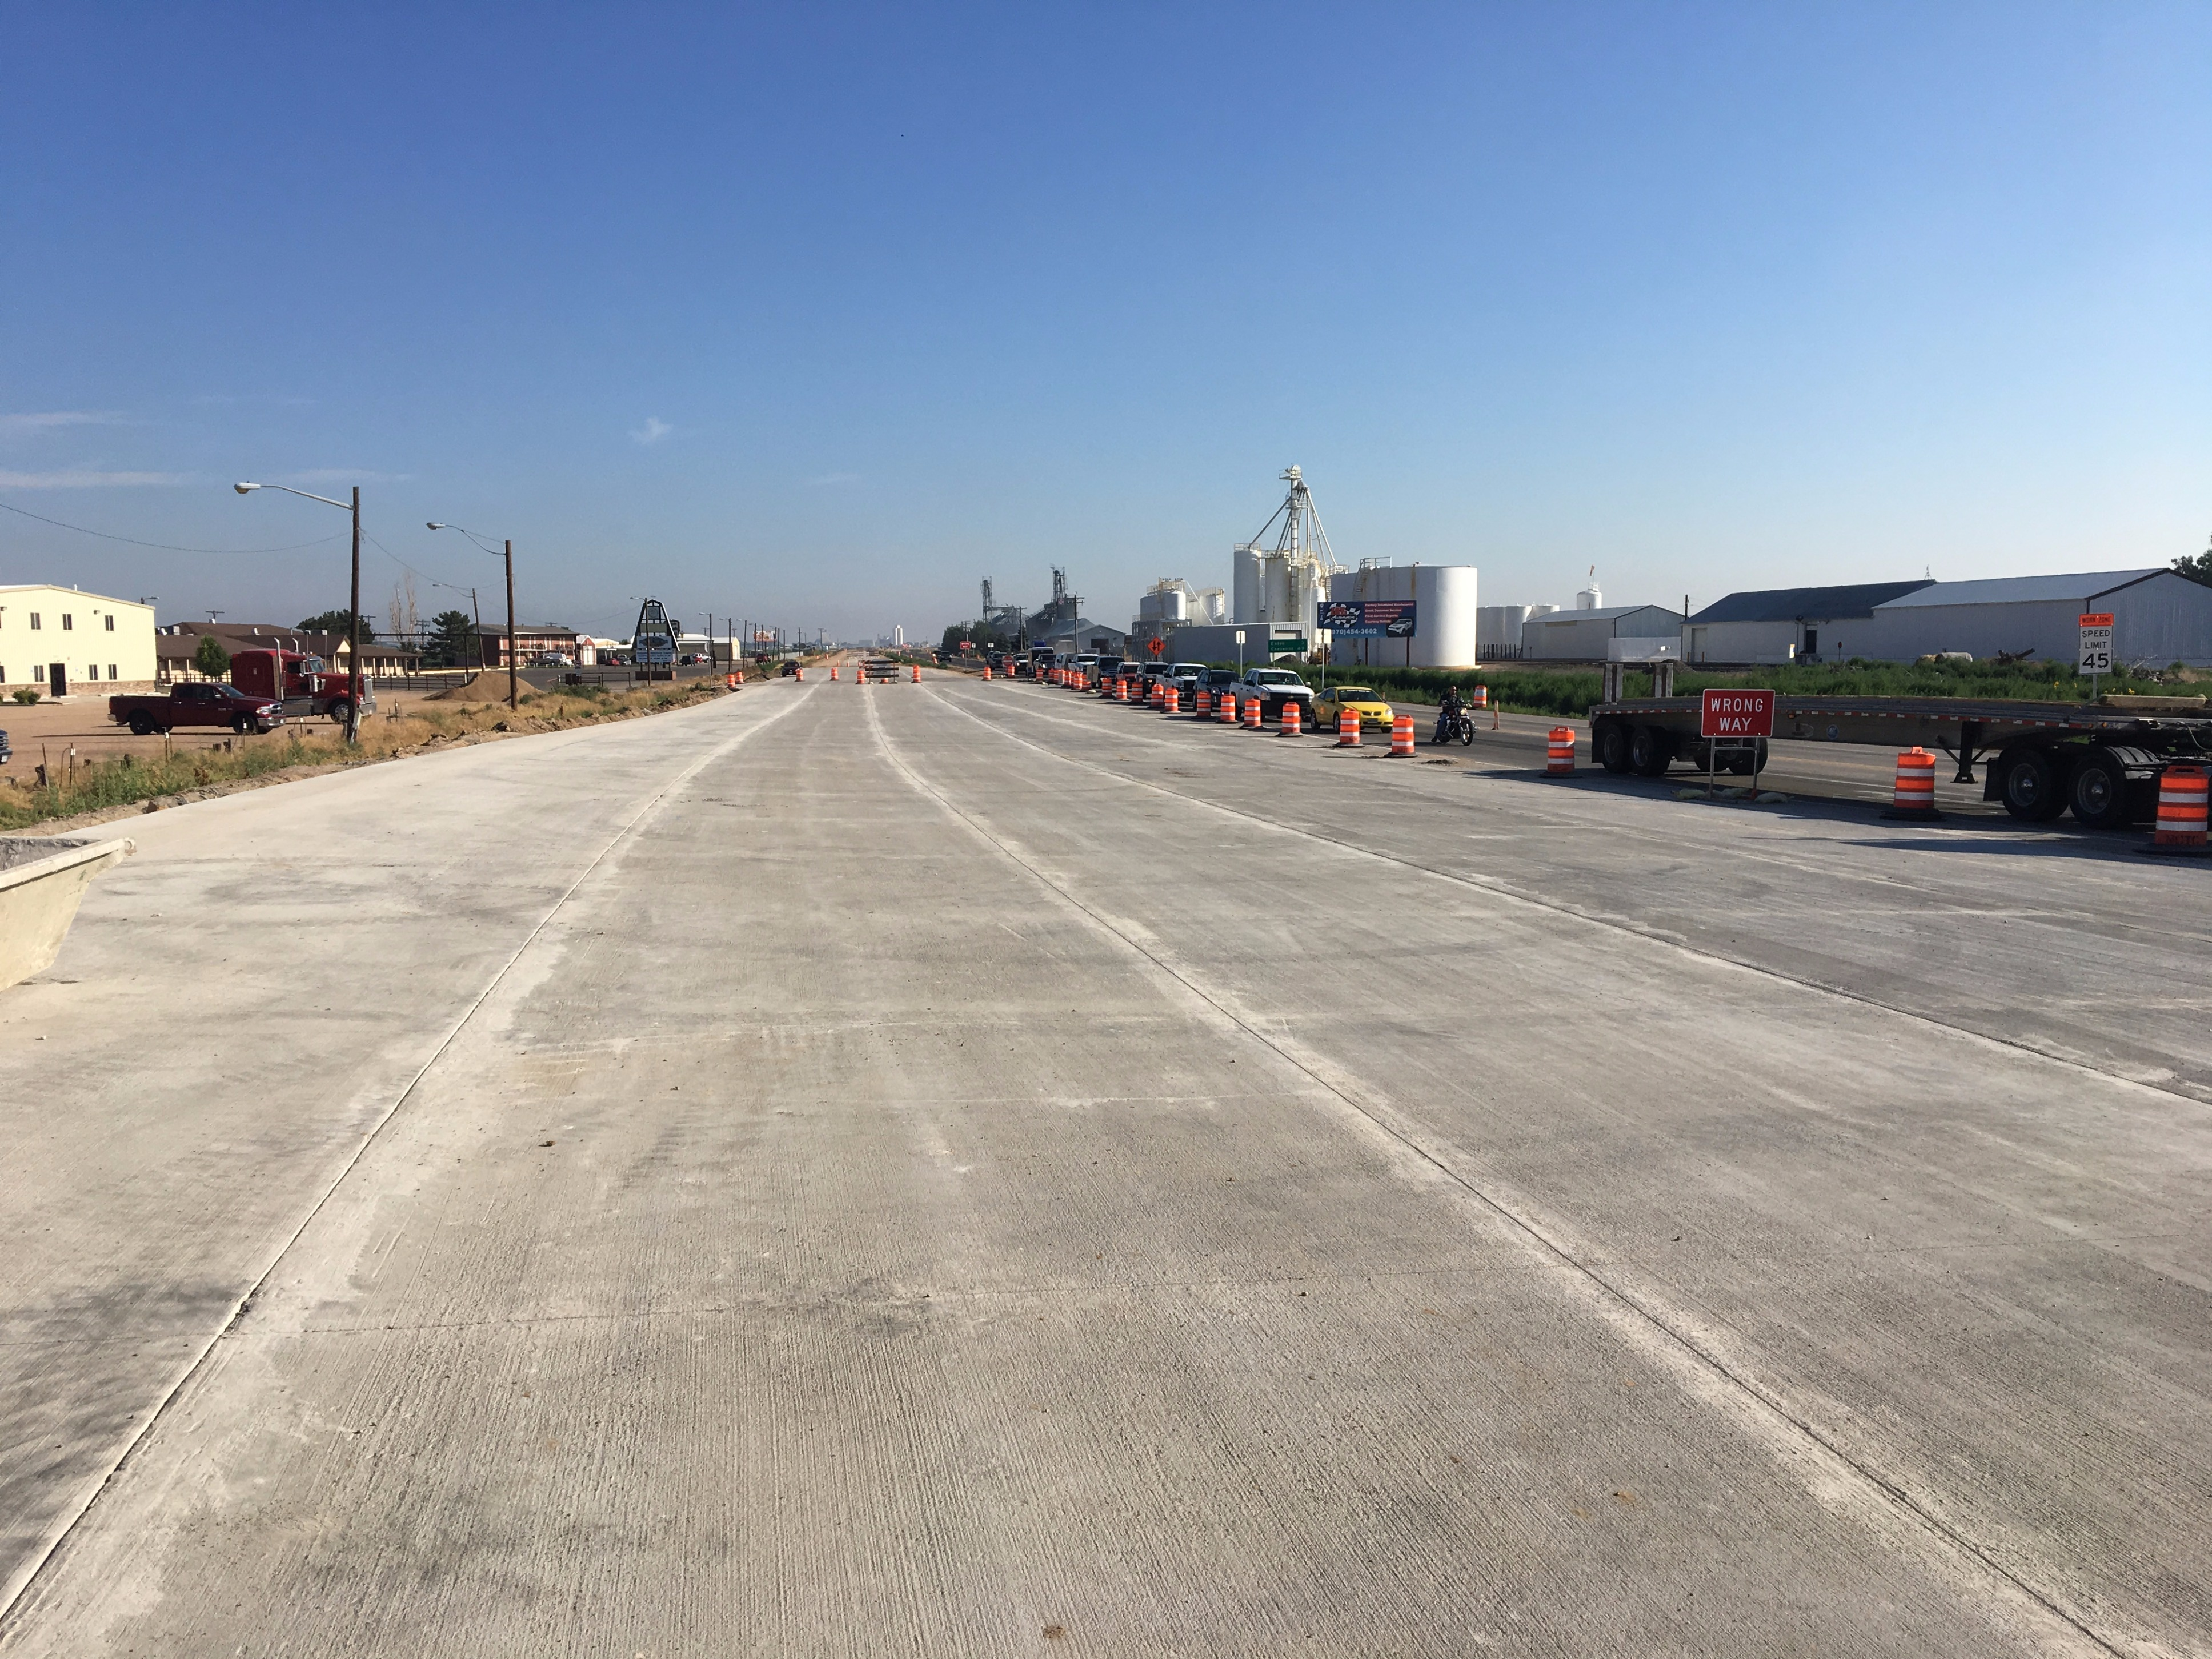 US 85 Southbound New Concrete Pavement at Intersection